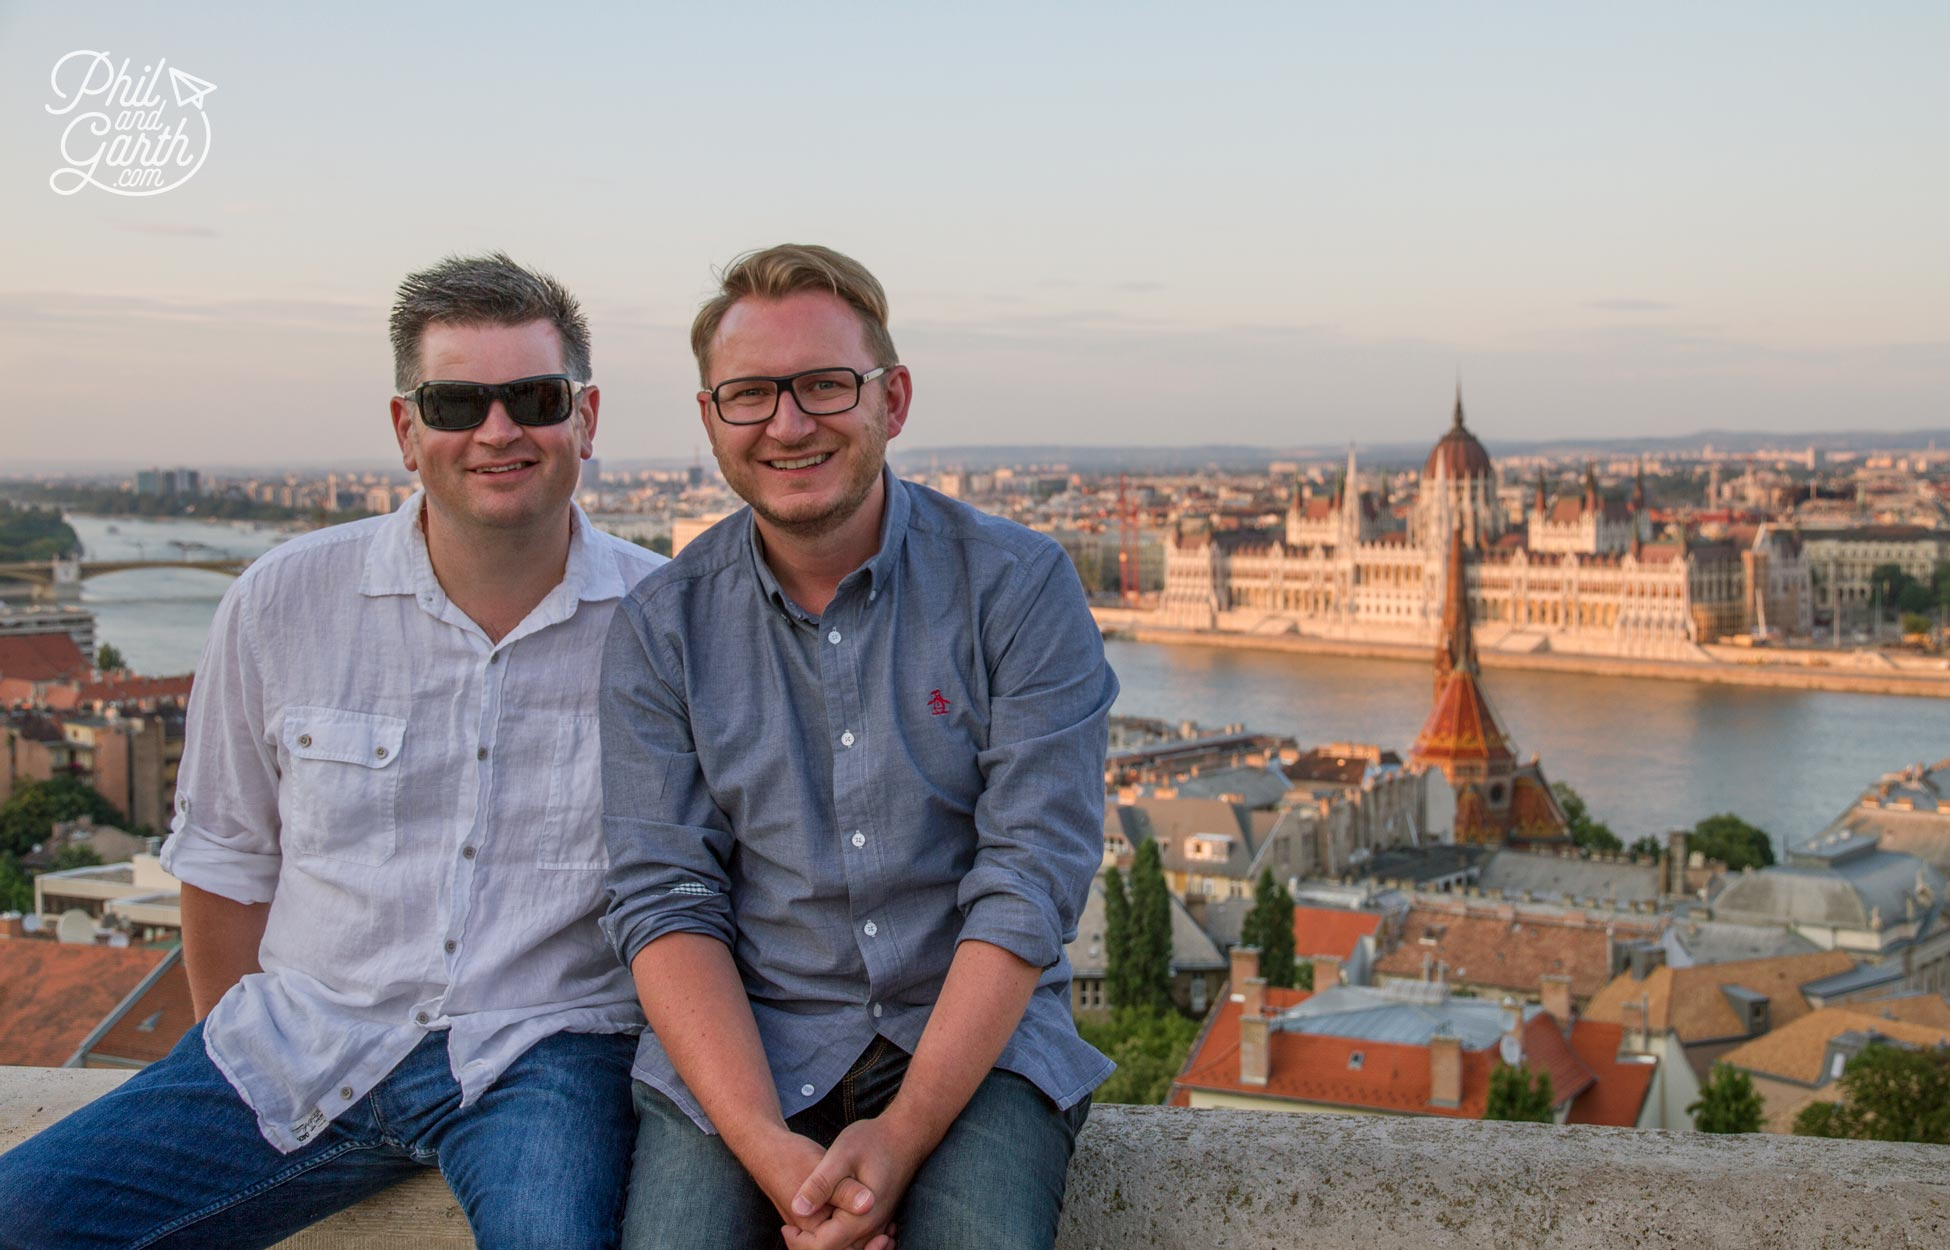 Phil and Garth's Top 5 Budapest Tips